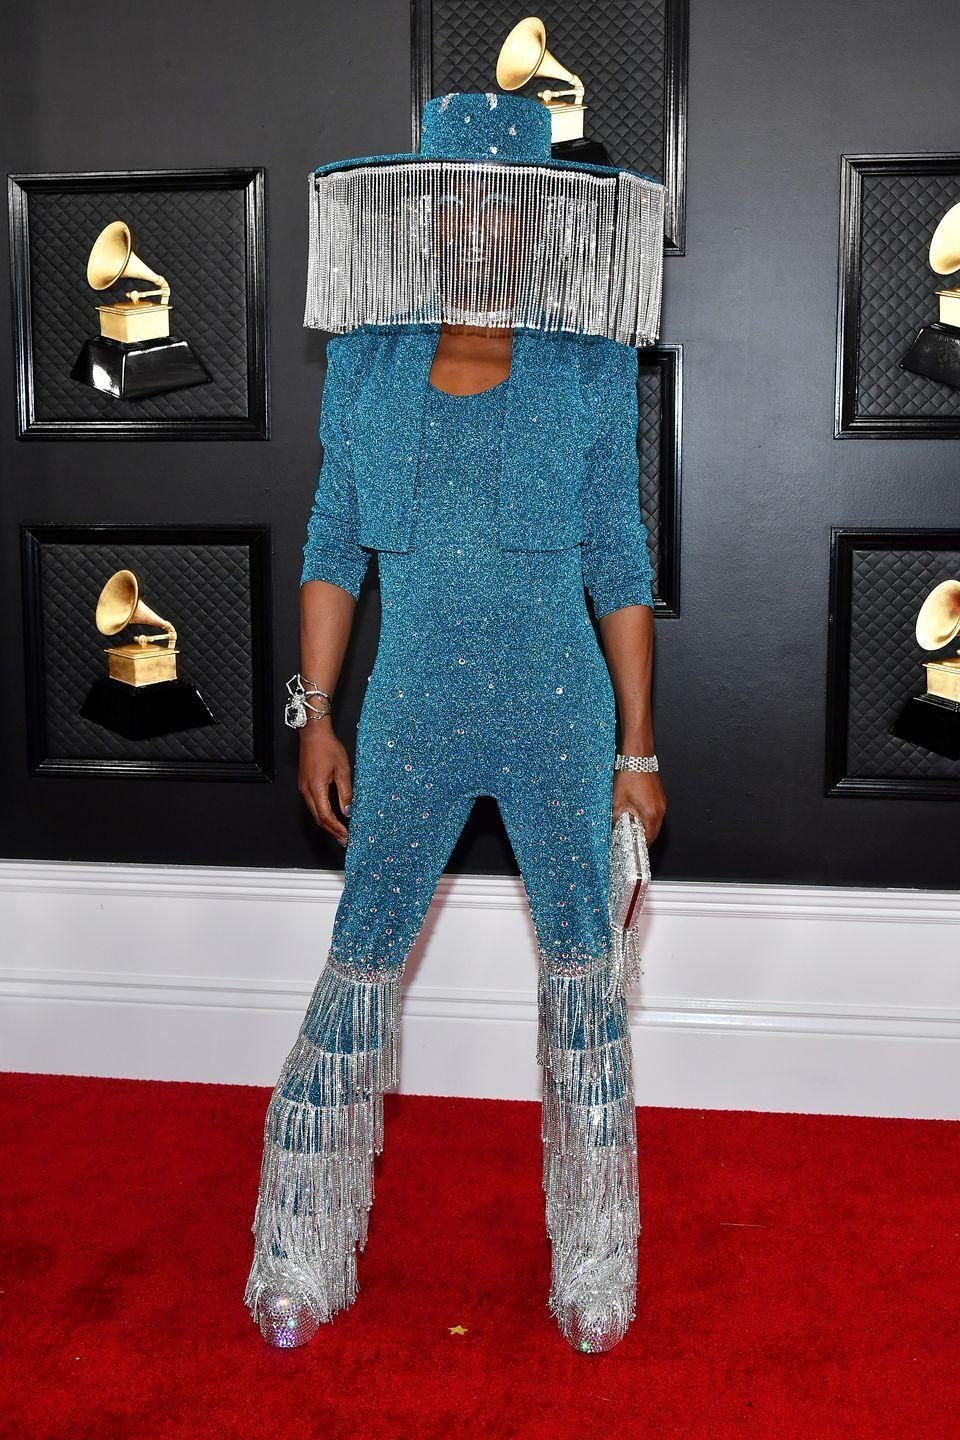 """<p>Perhaps his most figure-hugging look to date, Billy Porter turned up to the <a href=""""https://www.elle.com/uk/fashion/g30672026/grammy-awards-best-red-carpet-looks-dresses/"""" rel=""""nofollow noopener"""" target=""""_blank"""" data-ylk=""""slk:2020 GRAMMY Awards"""" class=""""link rapid-noclick-resp"""">2020 GRAMMY Awards</a> in a custom Baja East blue crystal-encrusted ensemble.</p><p>The actor styled the look with a custom Sarah Sokol hat, designed by Porter, his stylist Ratelle and Scott Studenberg of Baja East.<br></p><p>Big brimmed and motorised, the hat featured peekaboo-style crystal curtains which opened and closed, inspiring memes-a-plenty.</p>"""